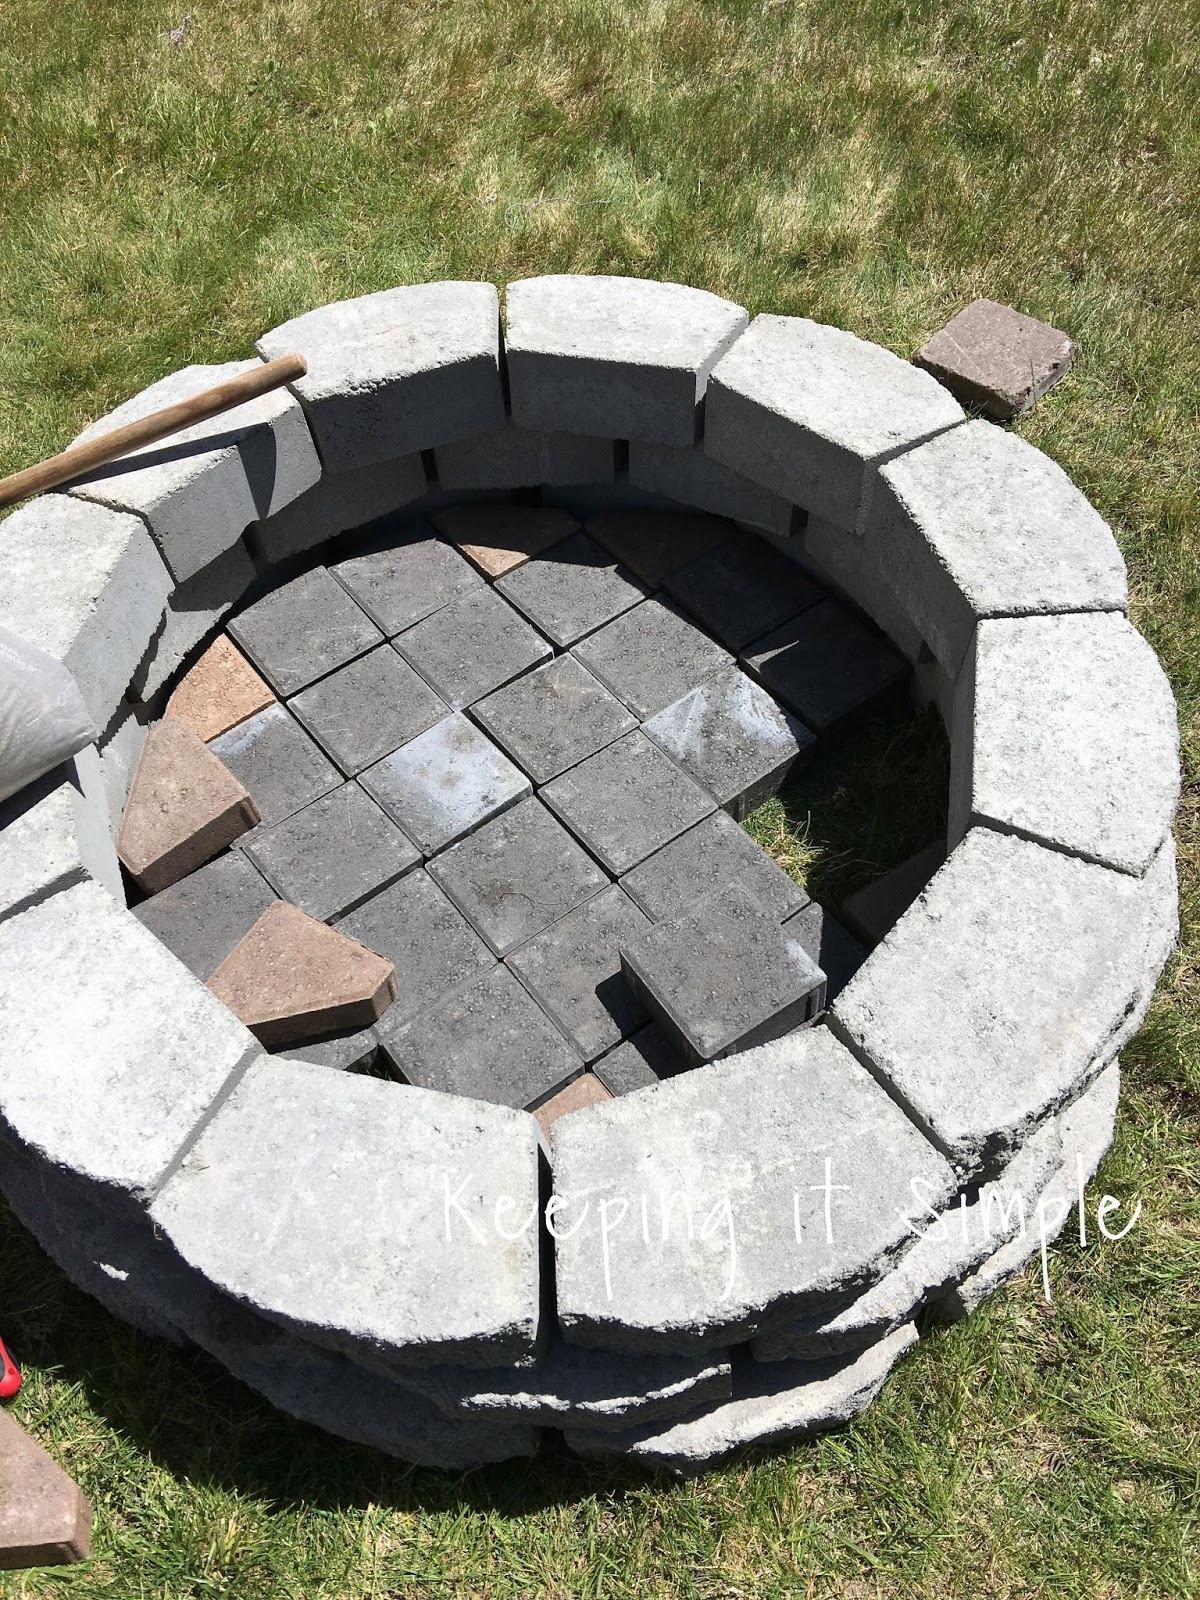 - How To Build A DIY Fire Pit For Only $60 • Keeping It Simple